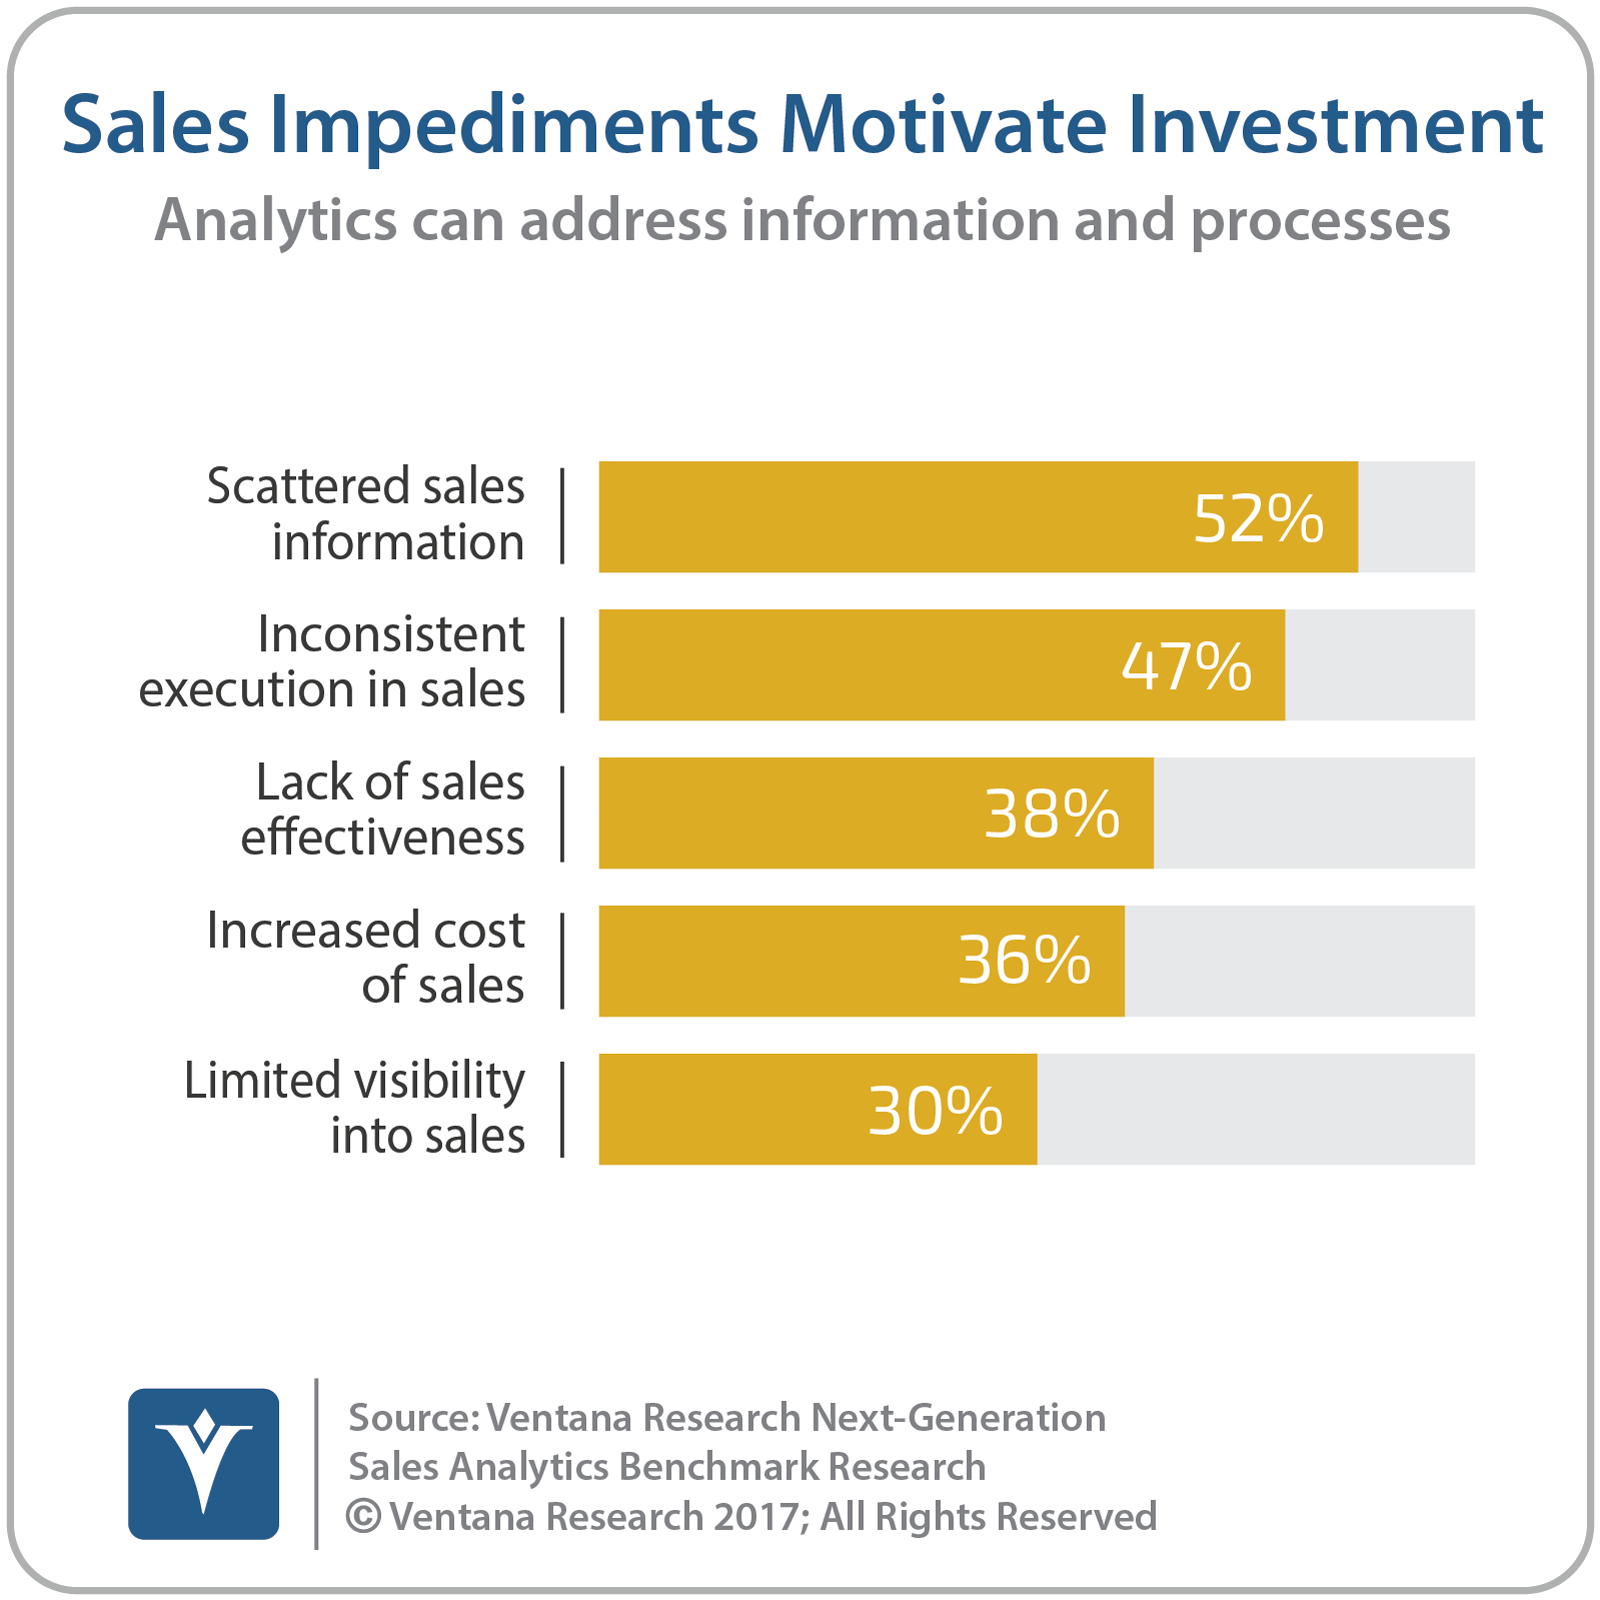 vr_NG_Sales_Analytics_02_sales_impediments_motivate-1.png